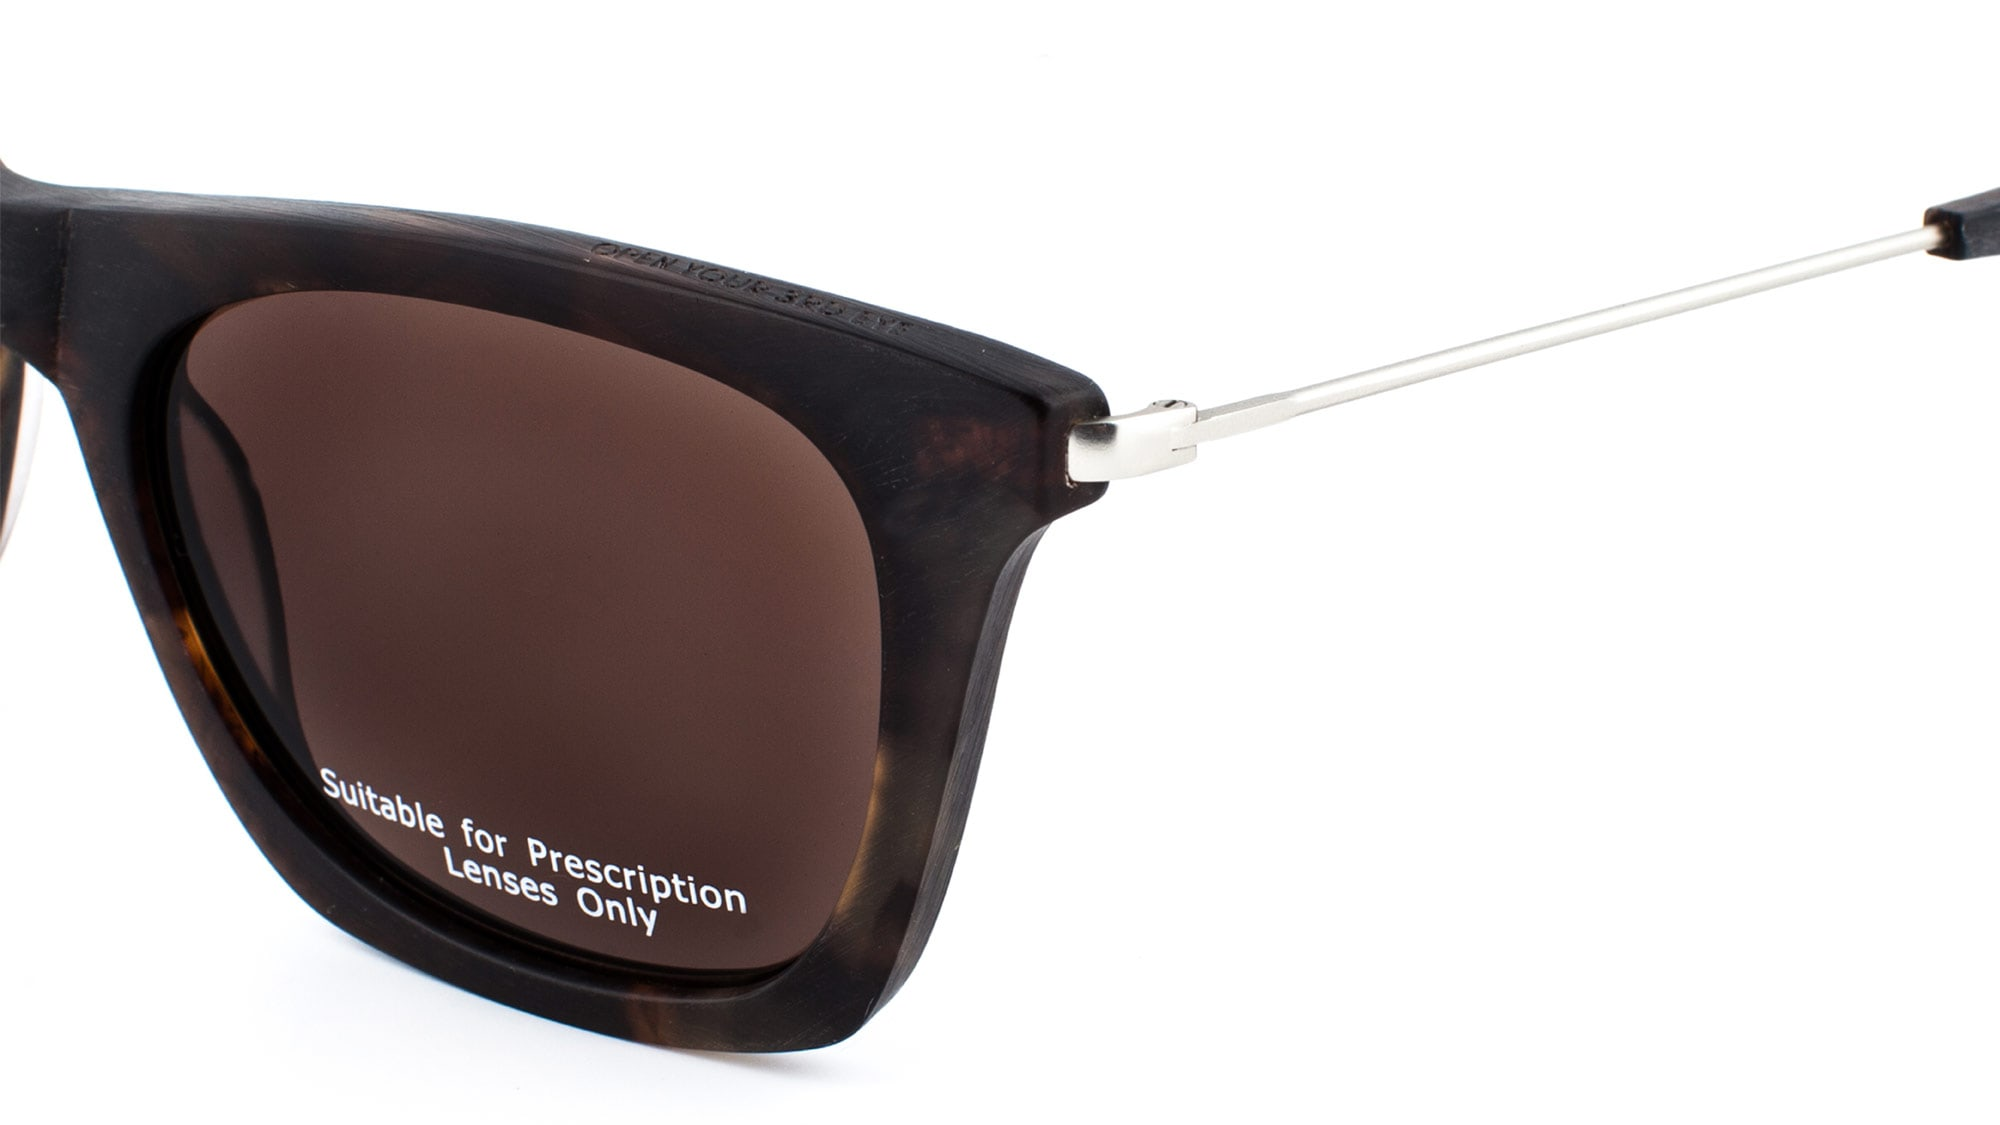 LAUREL SUN RX Glasses by Cheap Monday